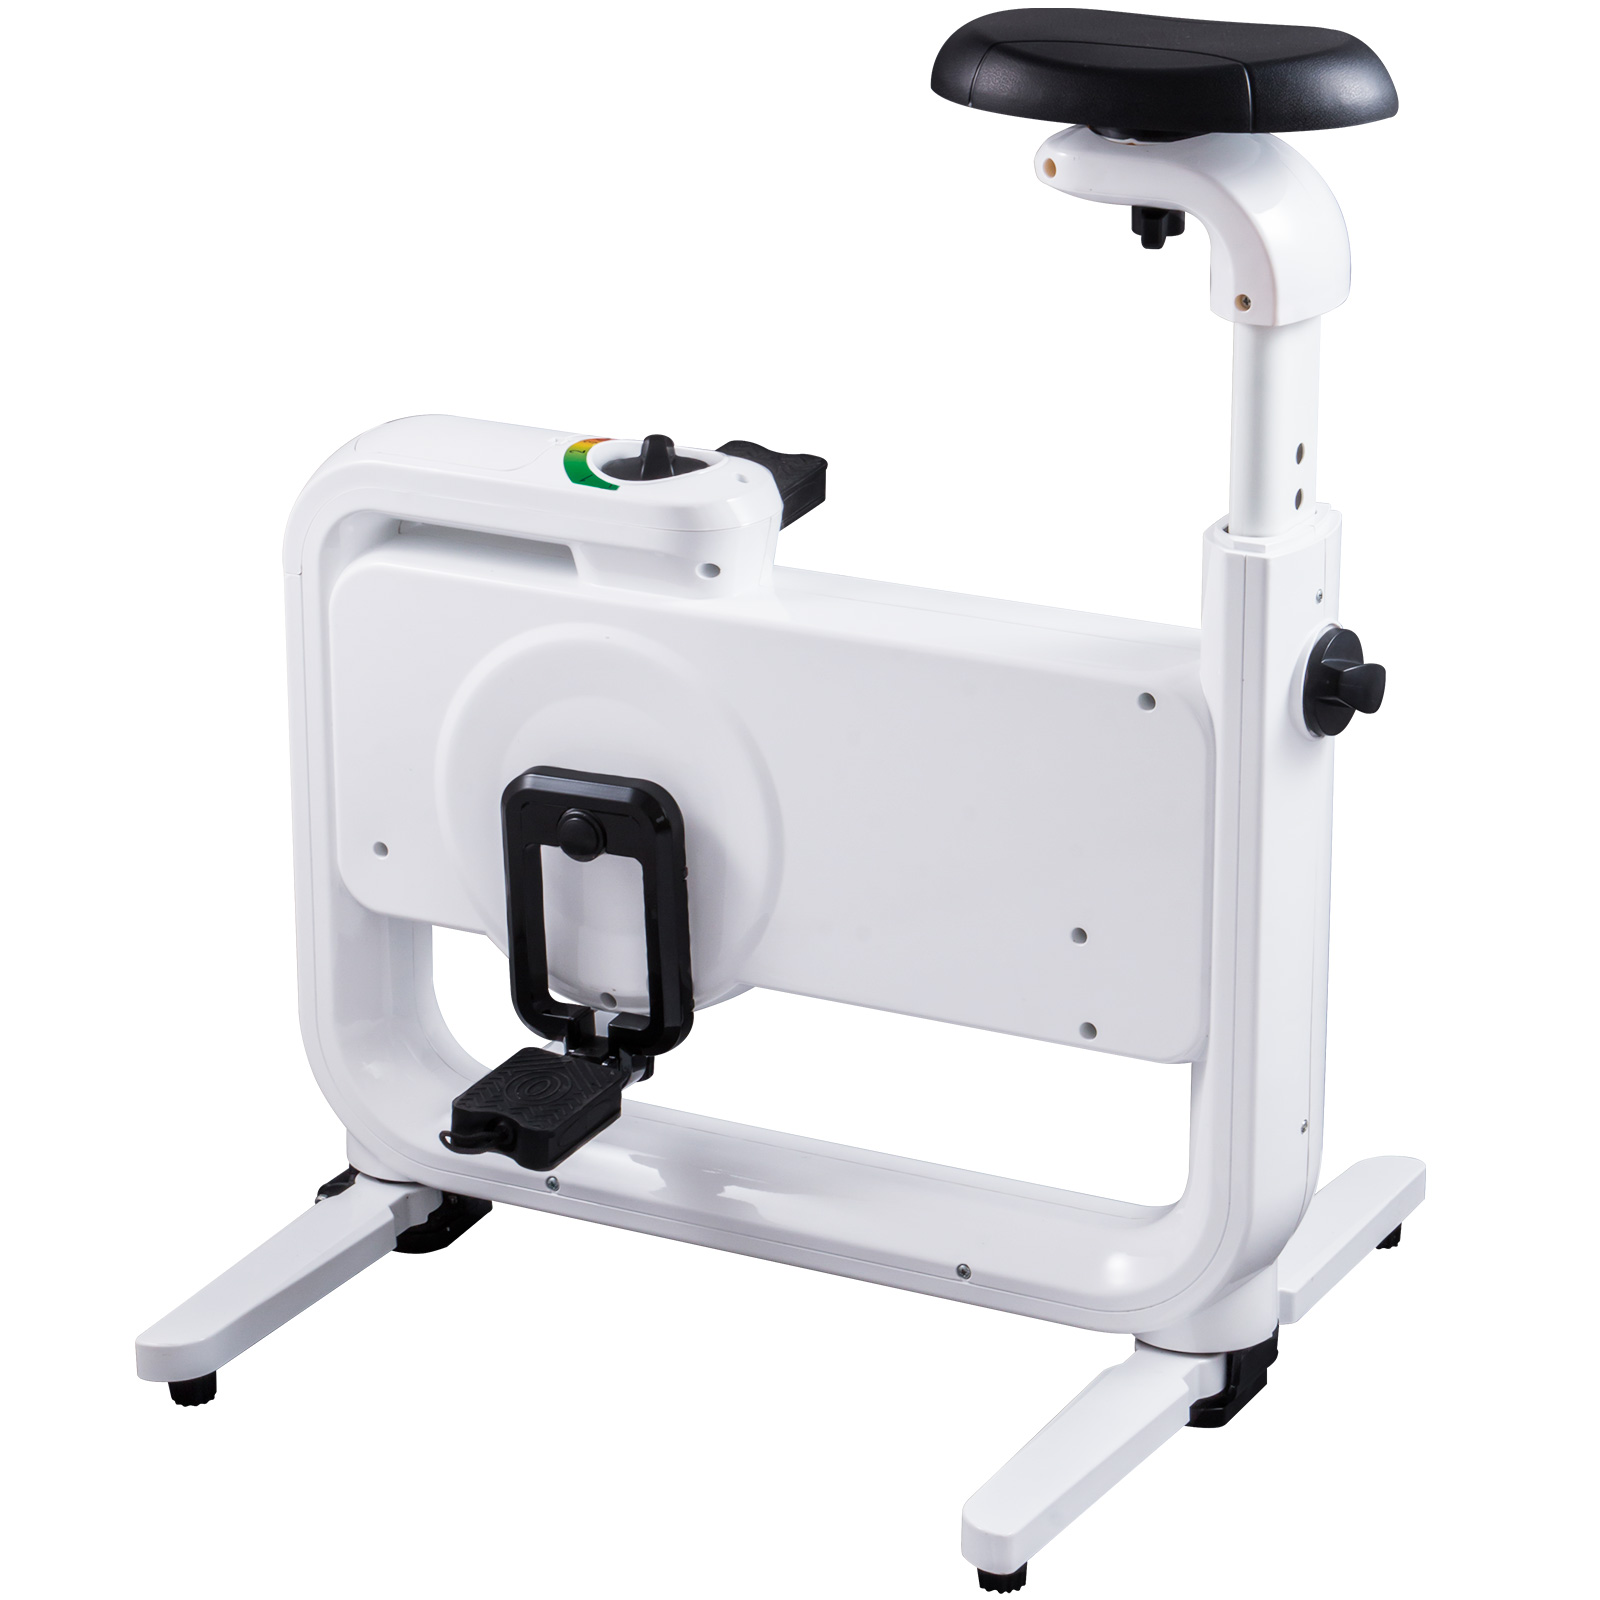 Multi-style-Magnetic-Exercise-Bike-office-Bicycle-under-Desk-Fitness-Cardio miniature 81